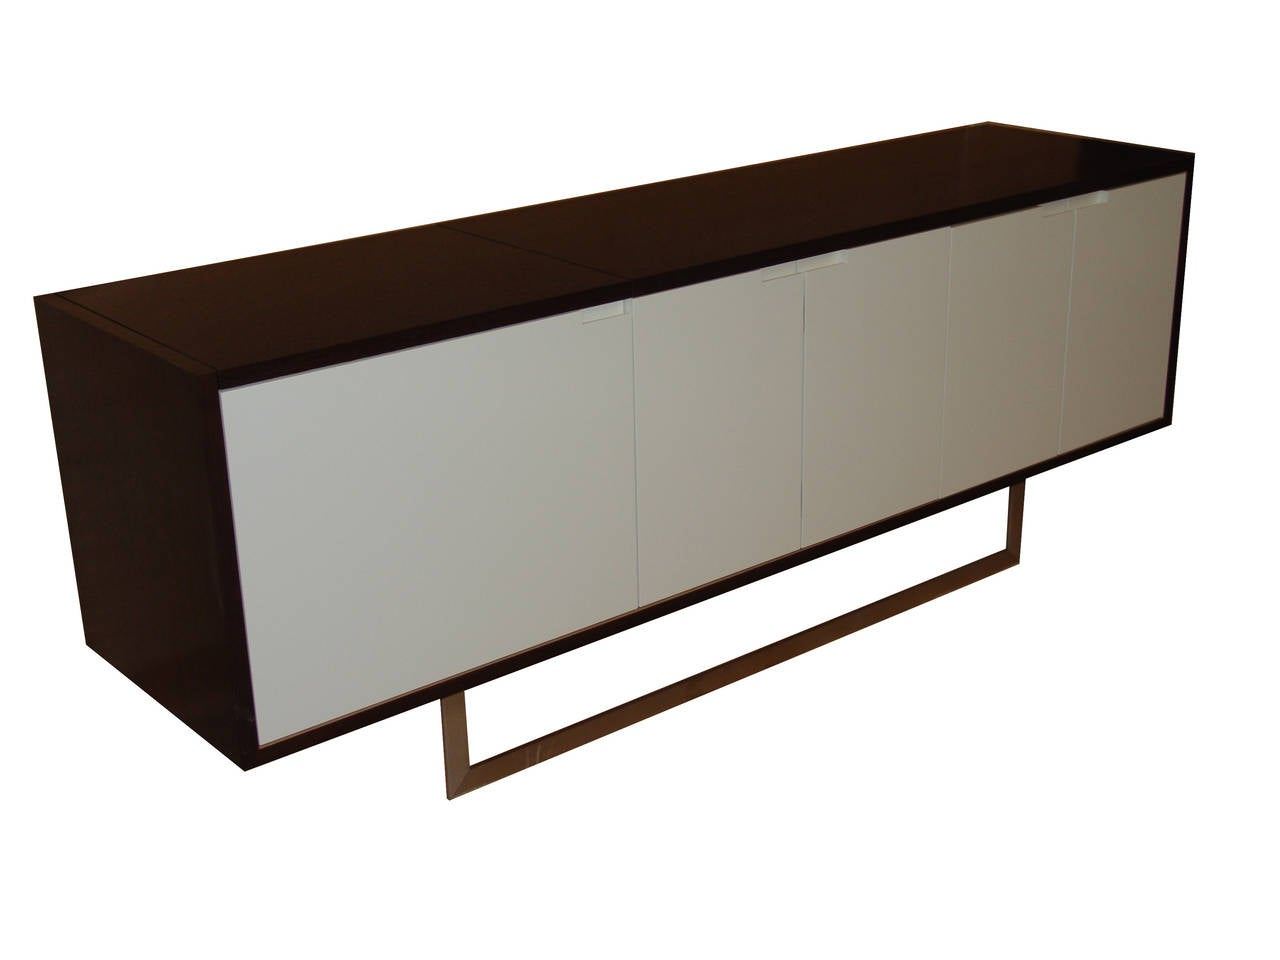 Custom lacquered doors with wenge veneer body on stainless base. Hinged flip-top allows for turntable use or bar service. Available in many finishes and sizes. Not in showroom. Contact dealer for information.